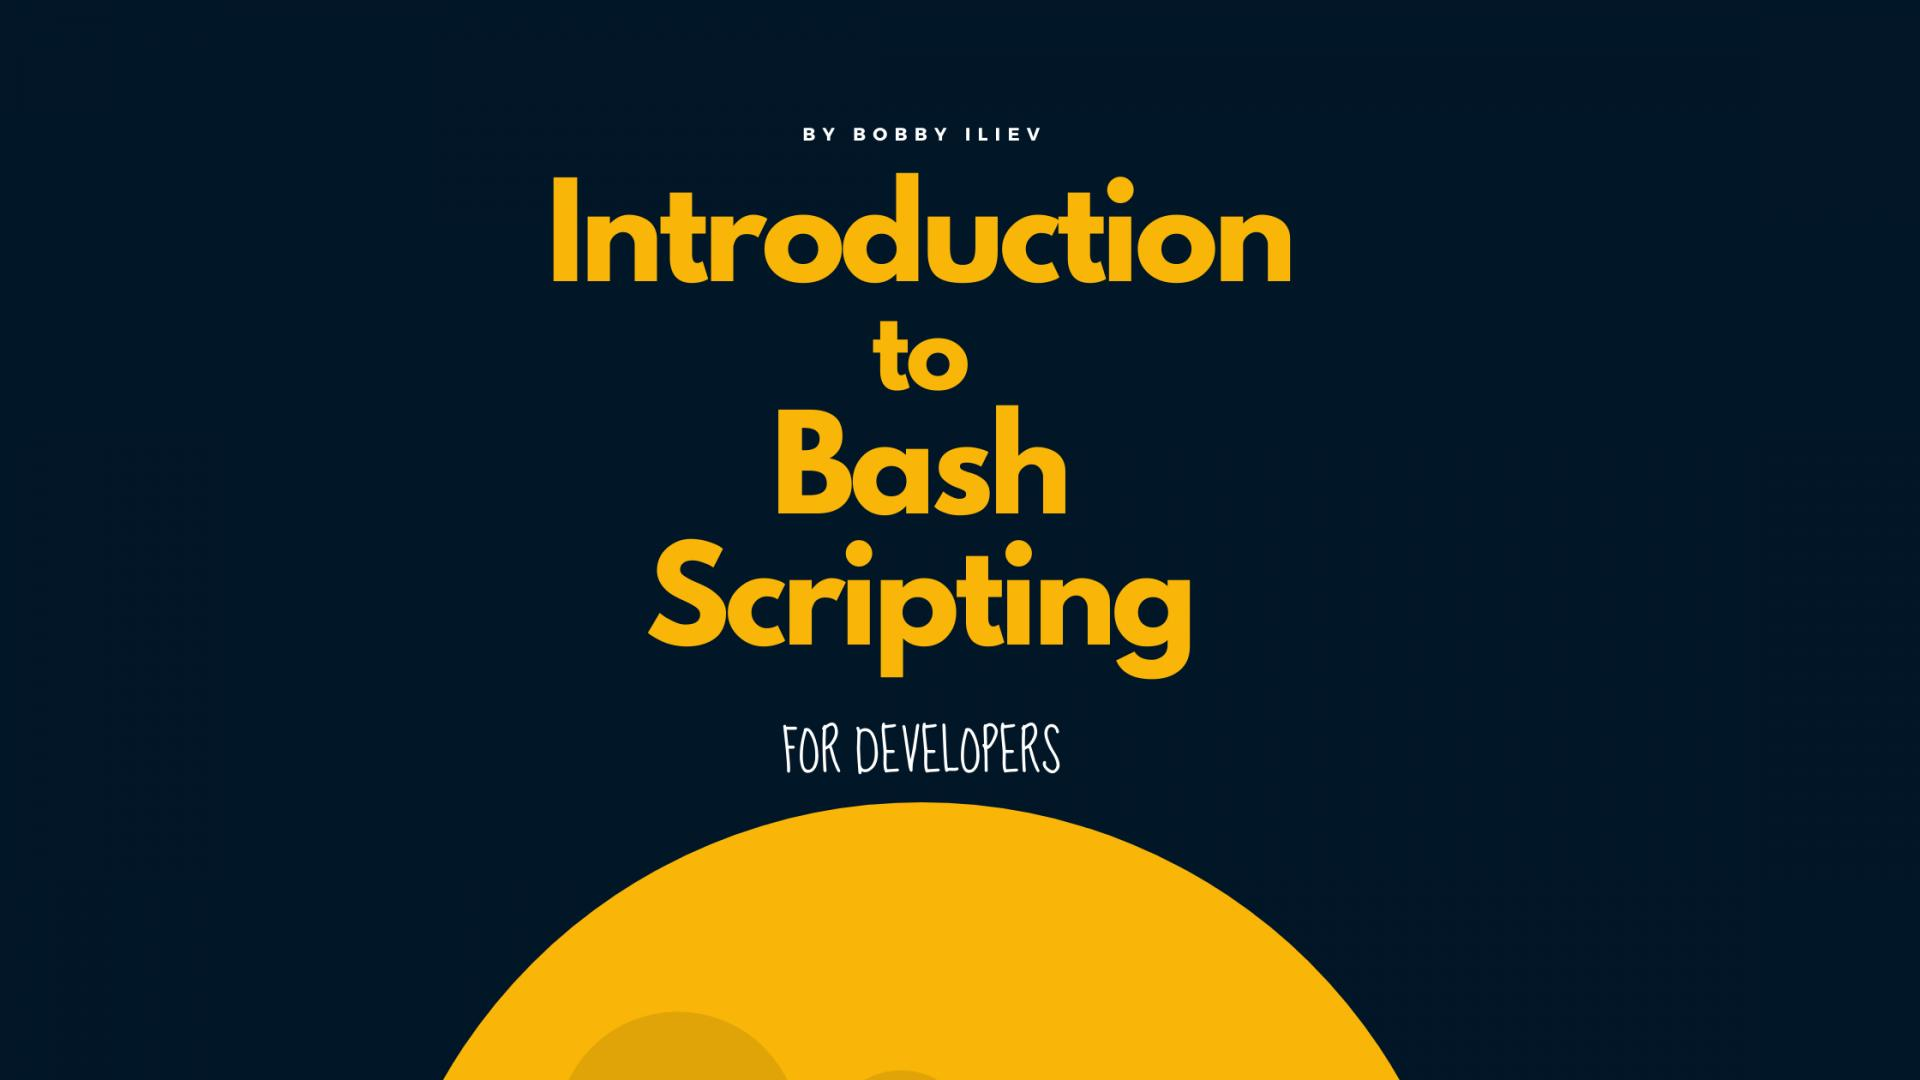 Open-Source Introduction to Bash Scripting Ebook/Guide